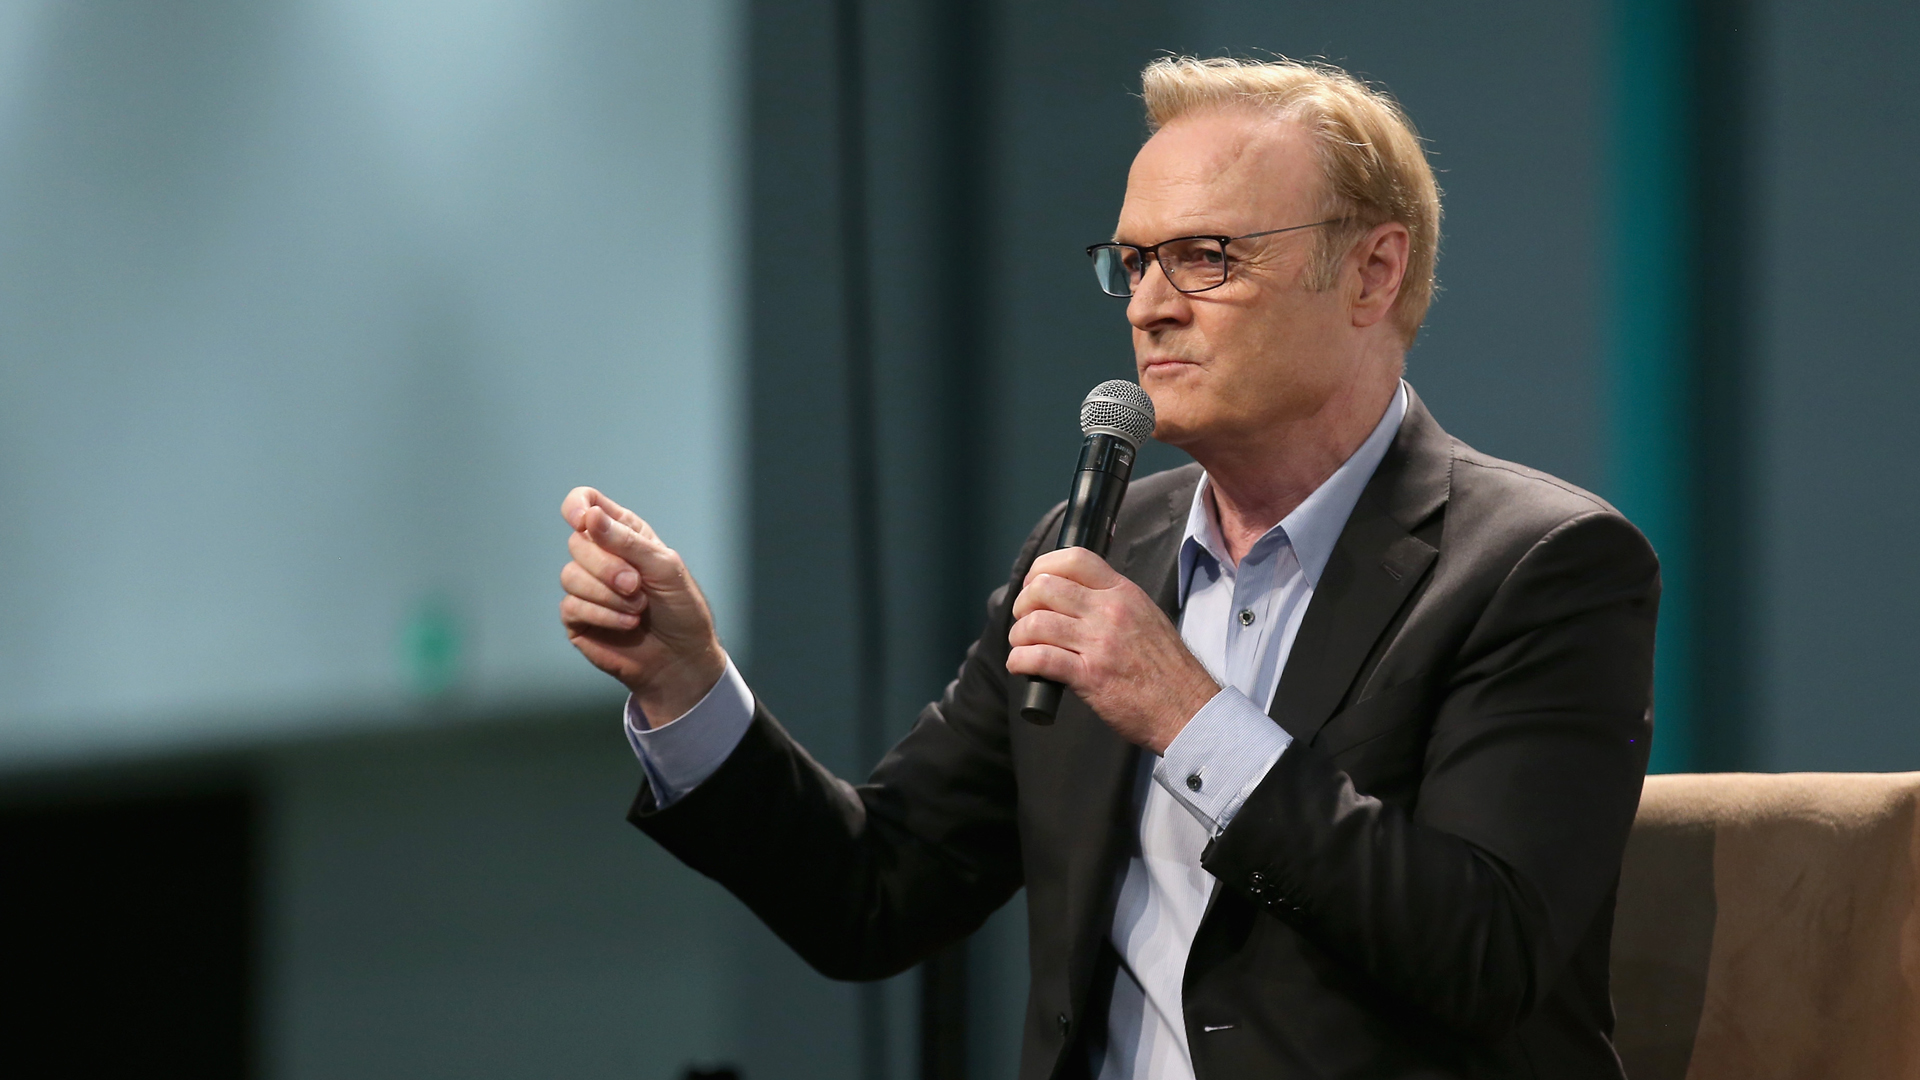 Lawrence O'Donnell speaks onstage during Politicon 2018 at Los Angeles Convention Center on October 20, 2018 in Los Angeles, California. (Credit: Phillip Faraone/Getty Images for Politicon)